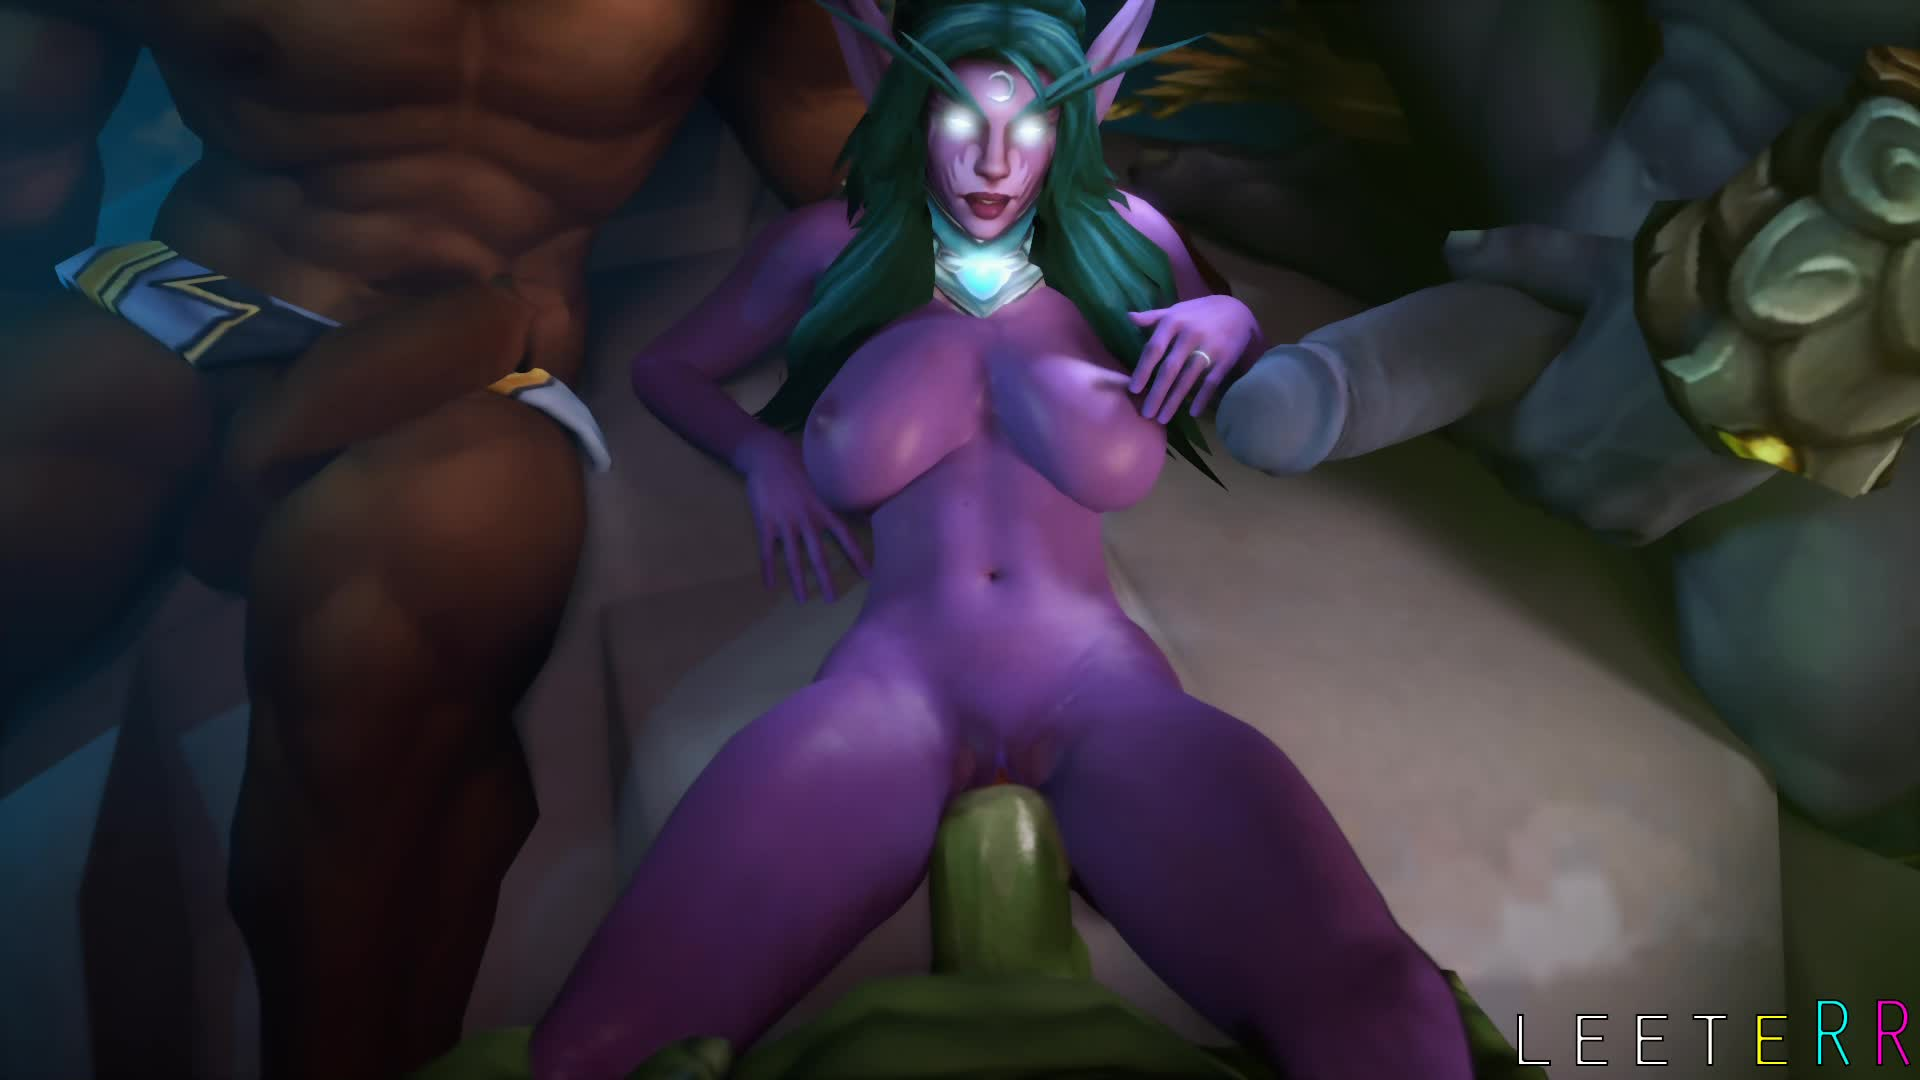 Free world of warcraft porno erotic image